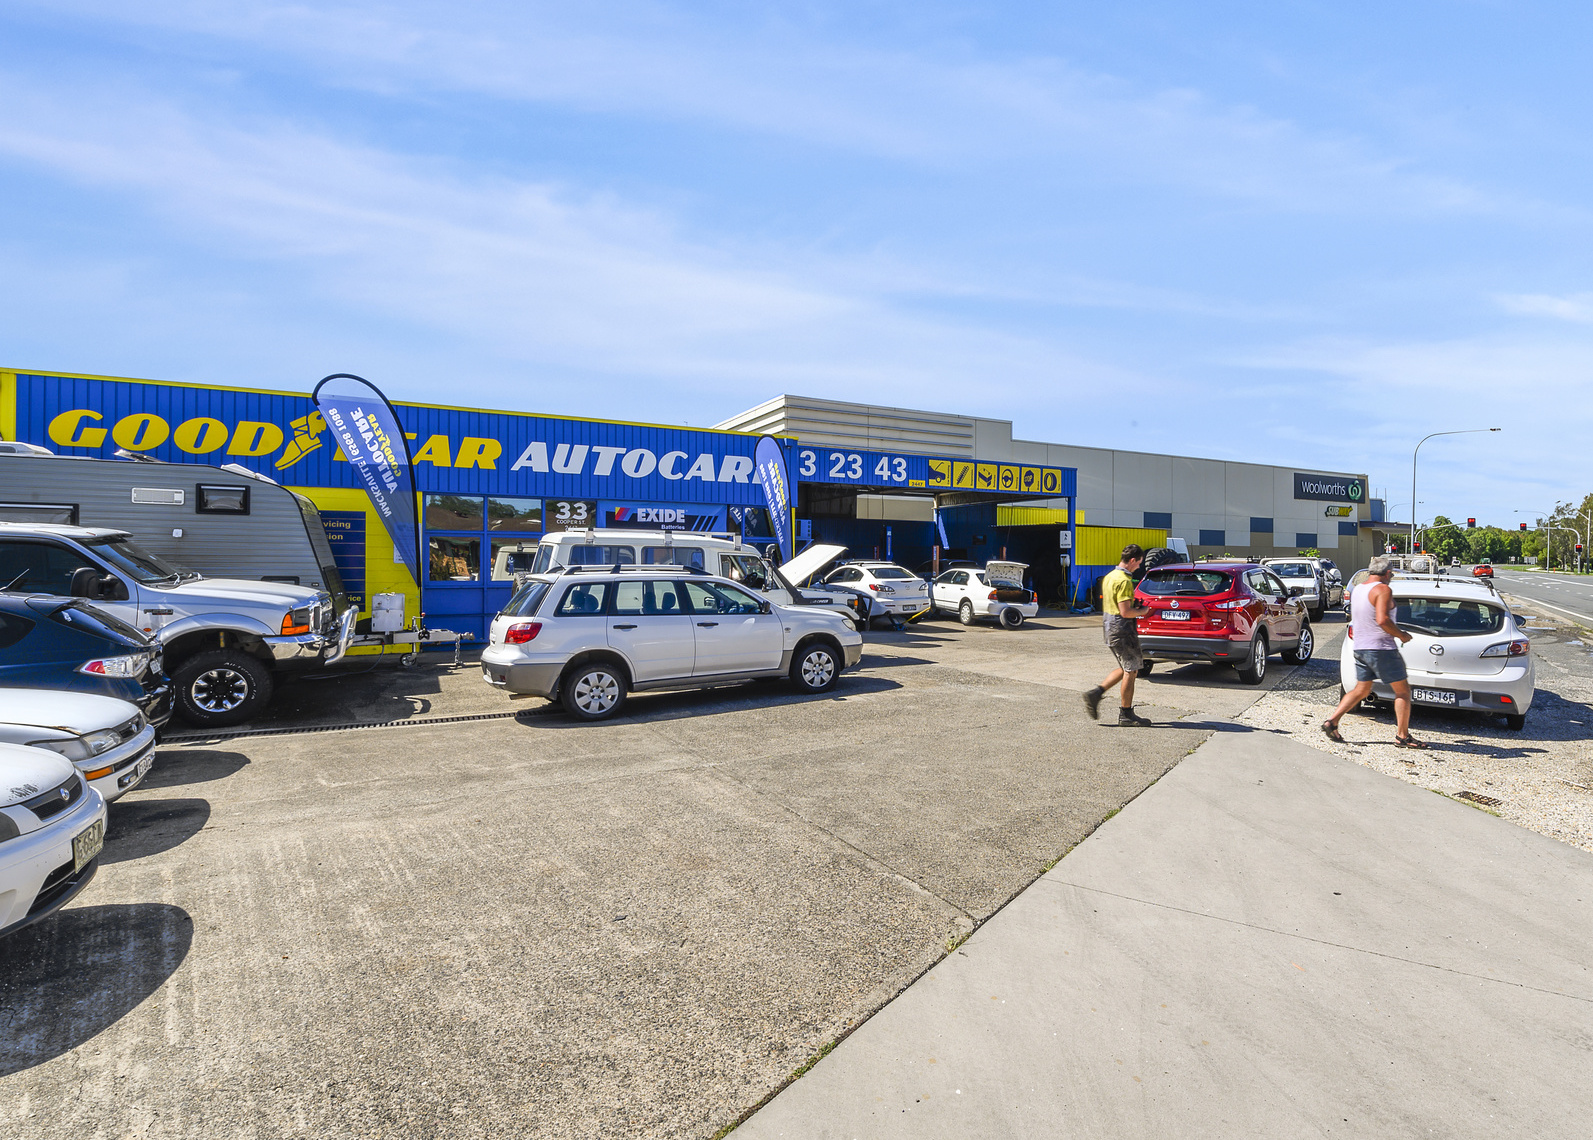 Top Performing Goodyear Autocare – On-Site 60+ Years